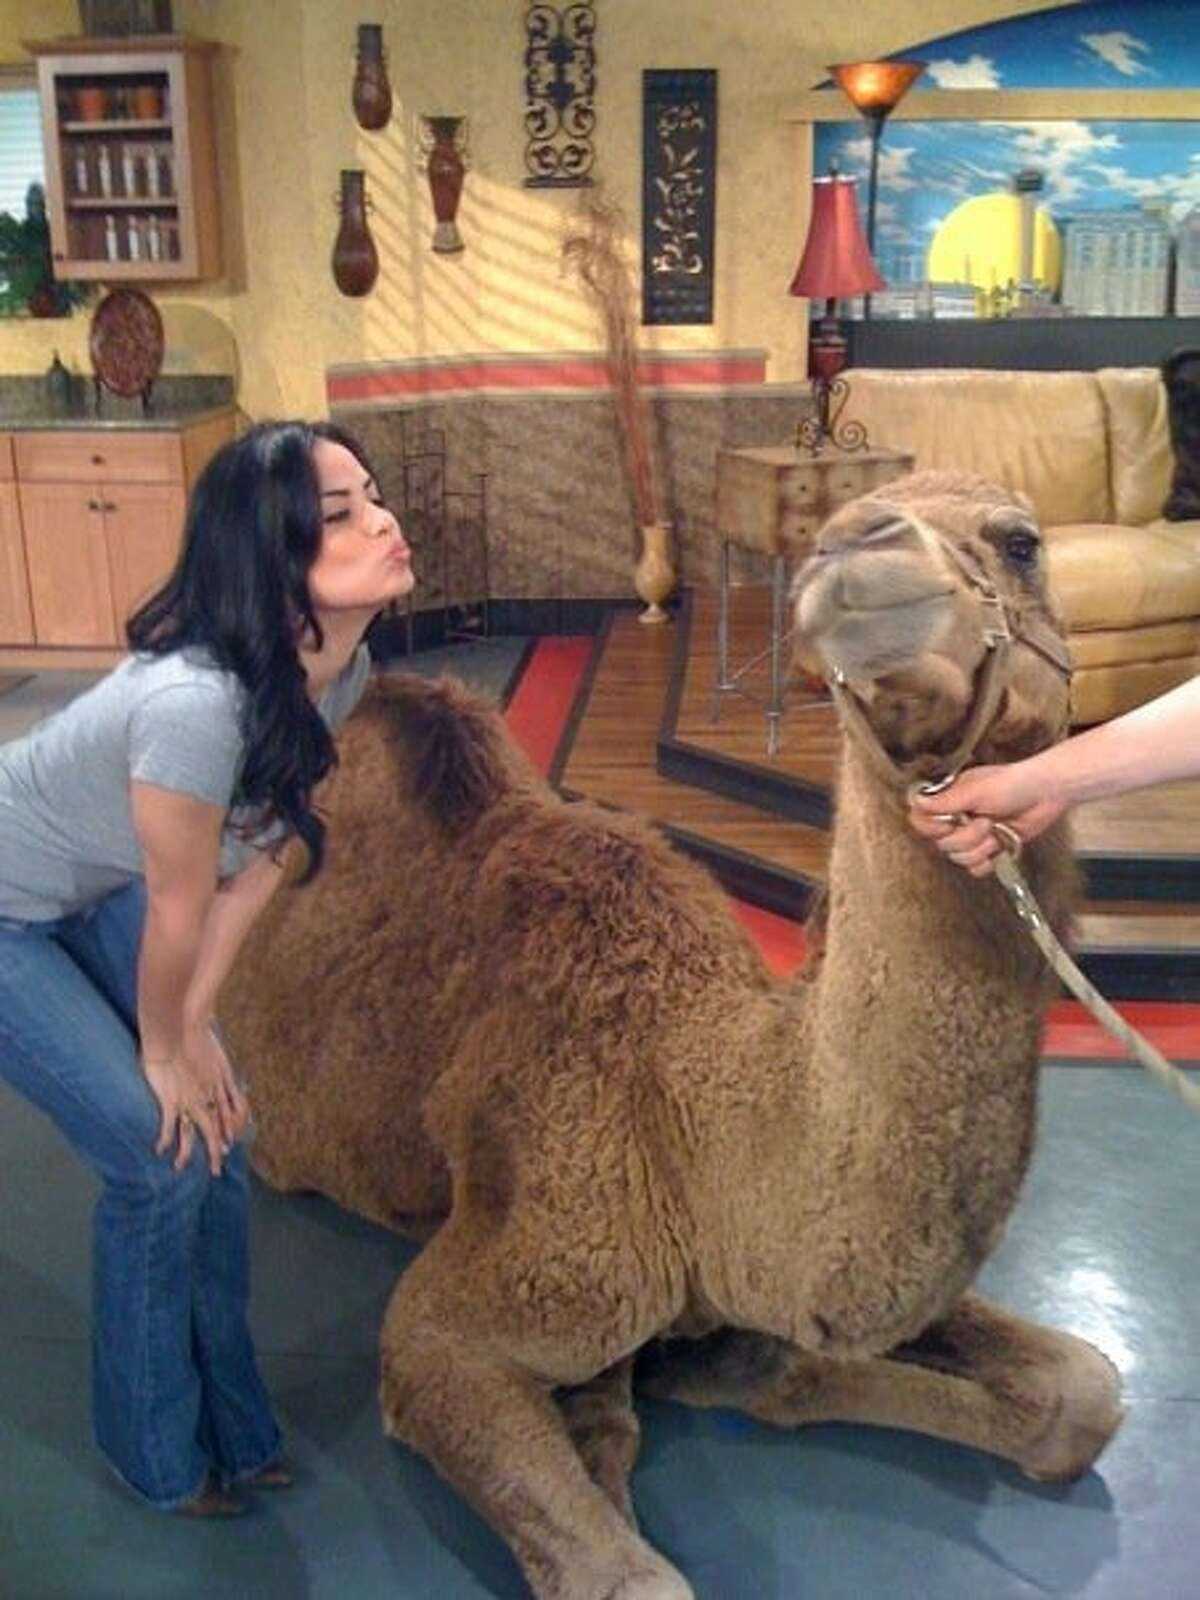 San Antonio TV host Cassandra Lazenby handled all sorts of animal visits to 'Great Day, SA' when she worked as executive producer on the KENS show - from a huge snake to a camel.